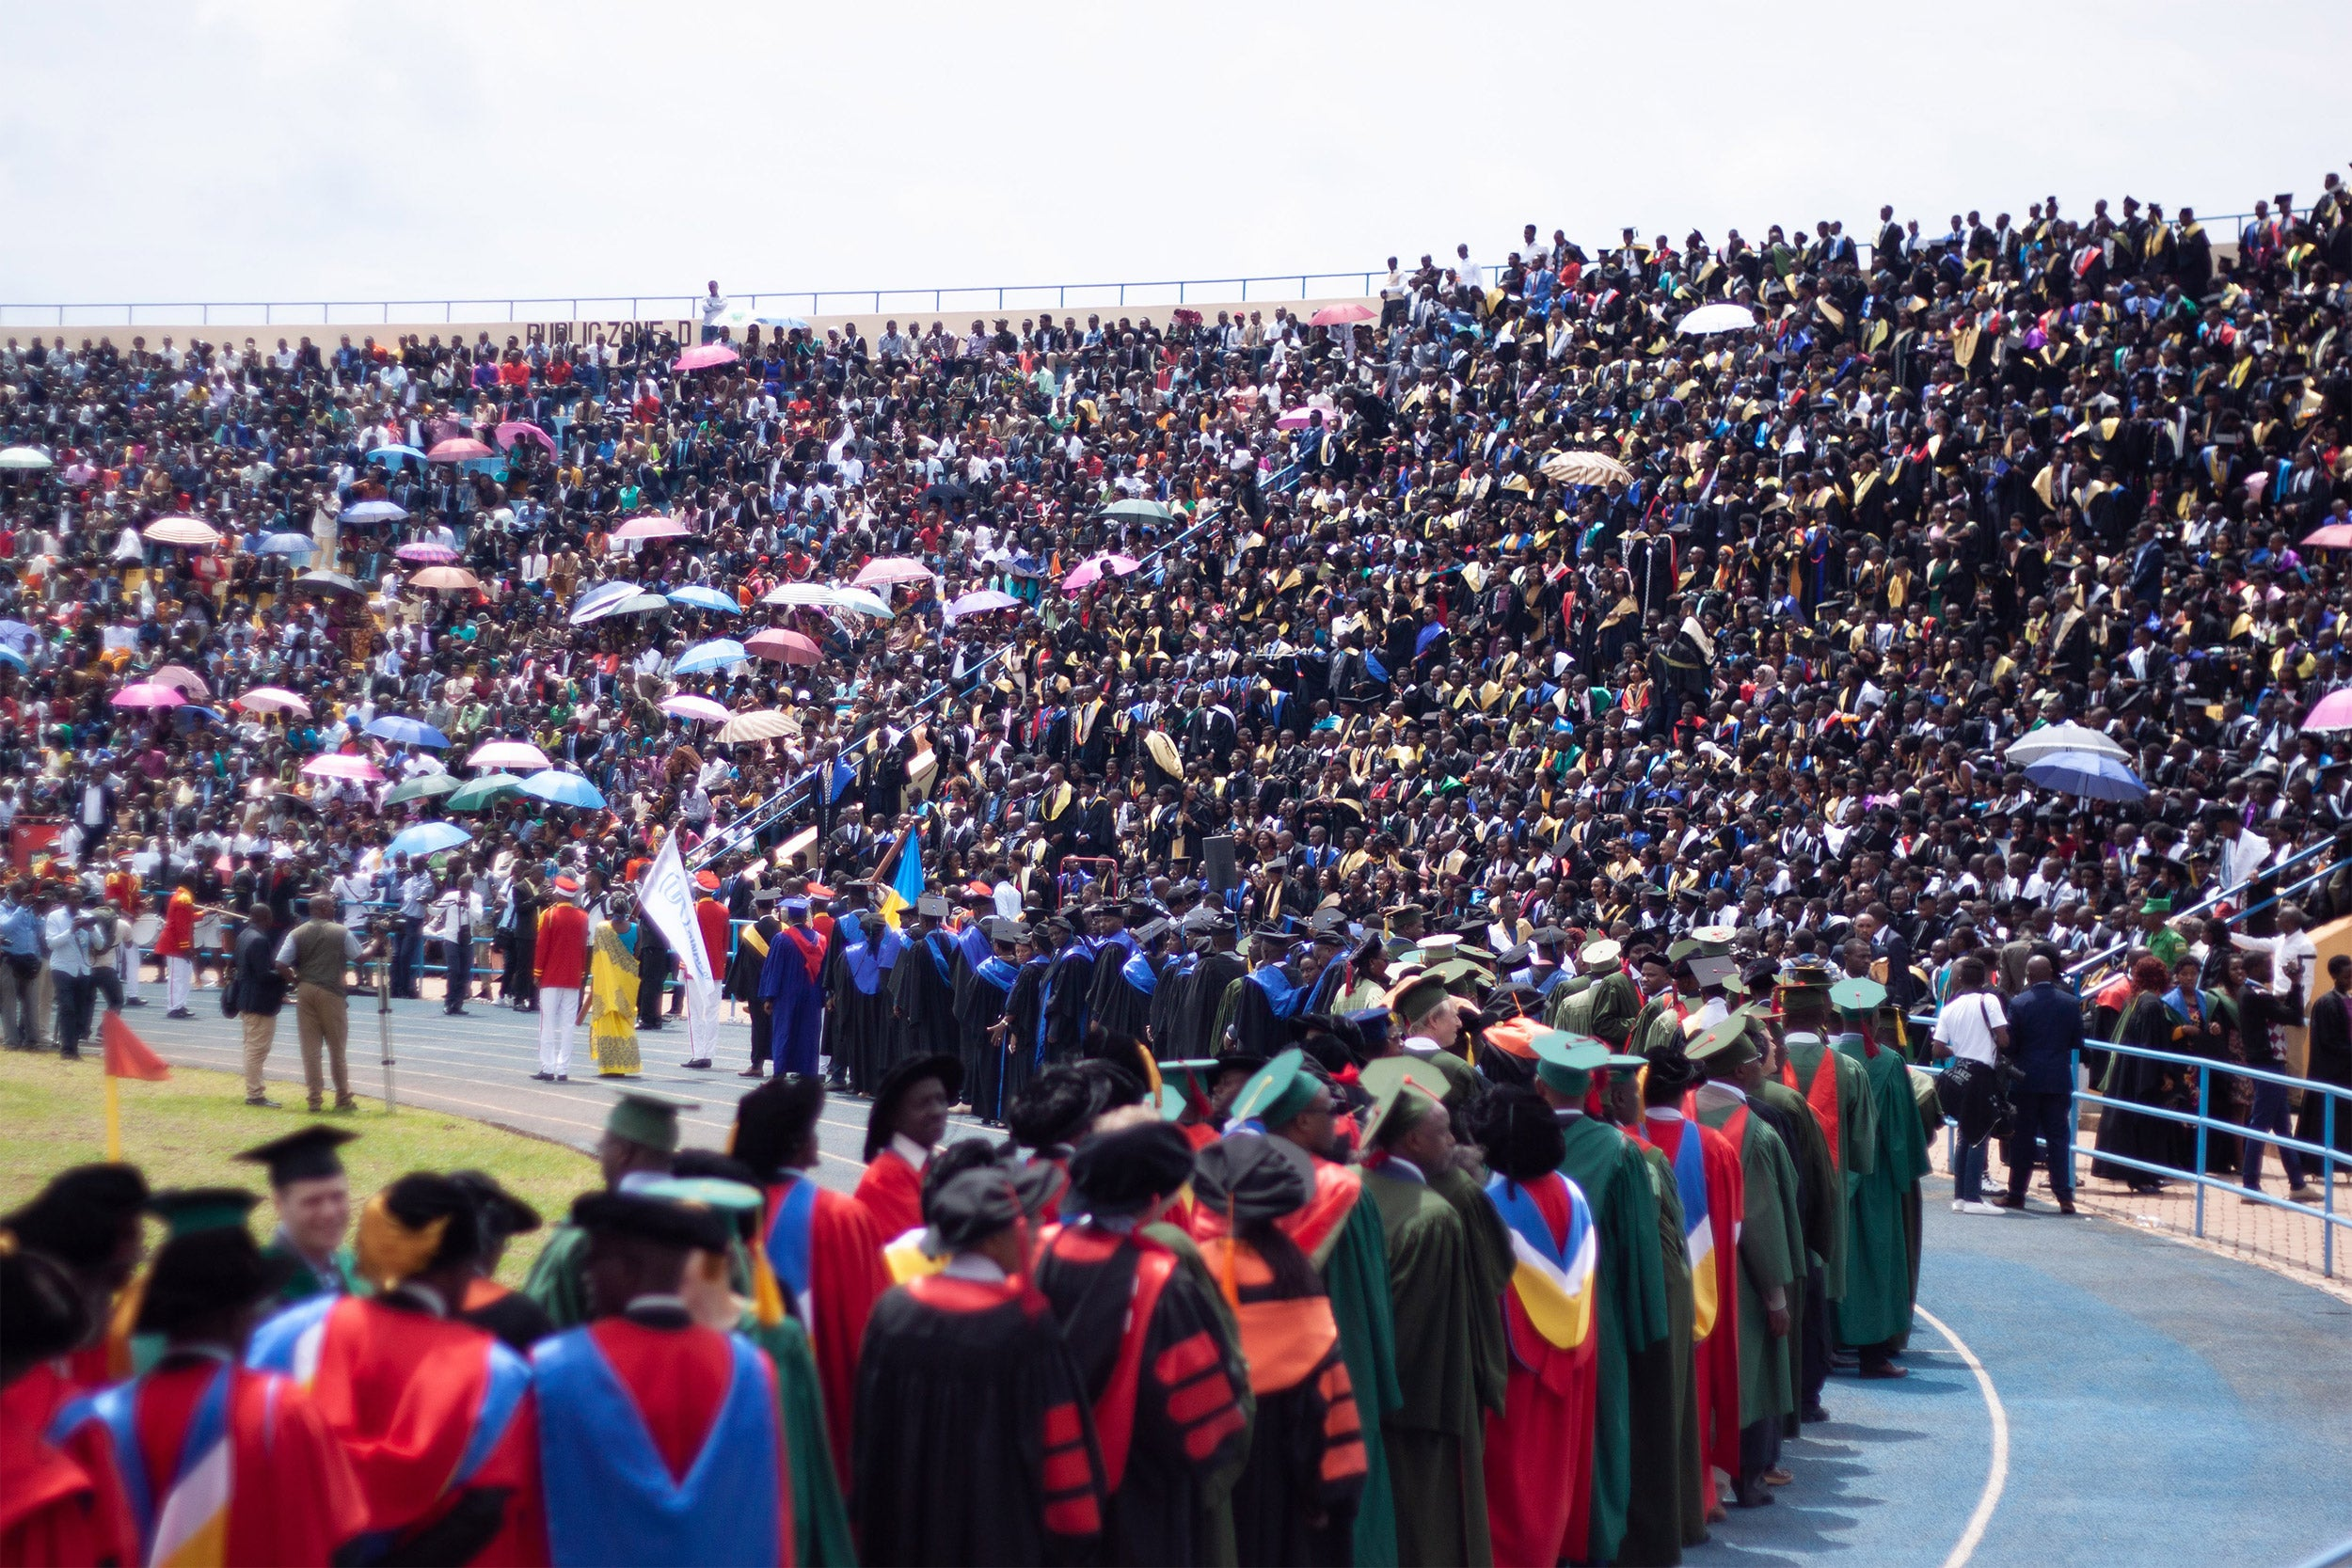 University of Rwanda dental students graduate